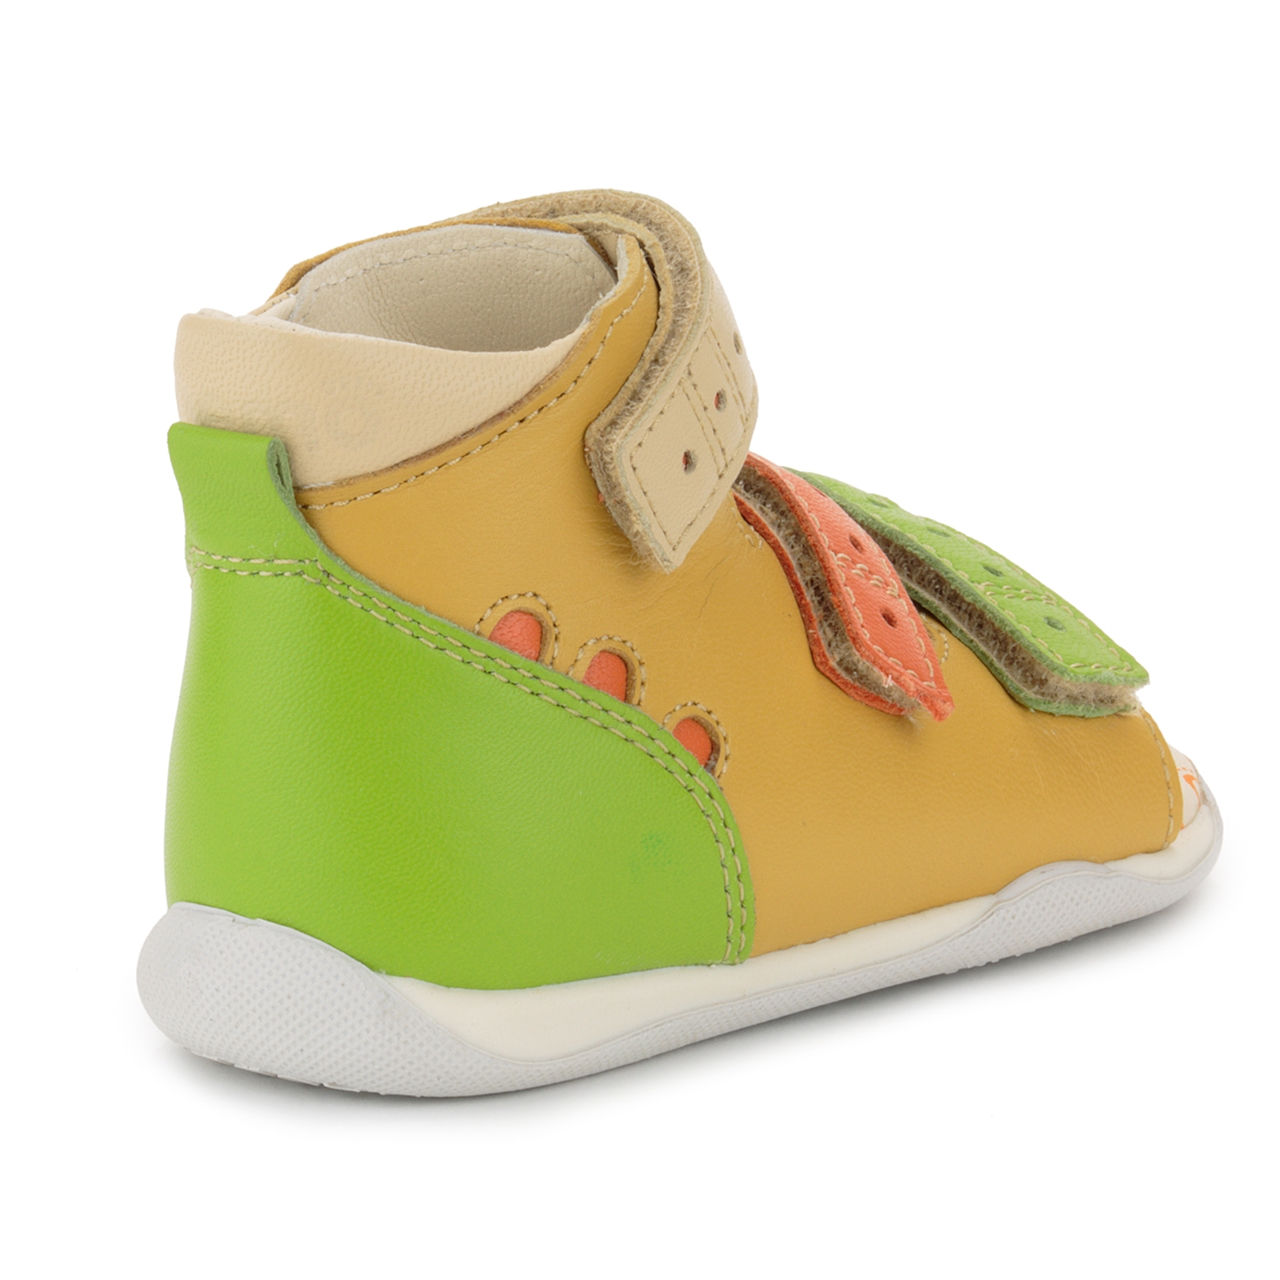 Memo Shoes. Memo Dino 3MA Yellow-Orange Infant & Toddler ...